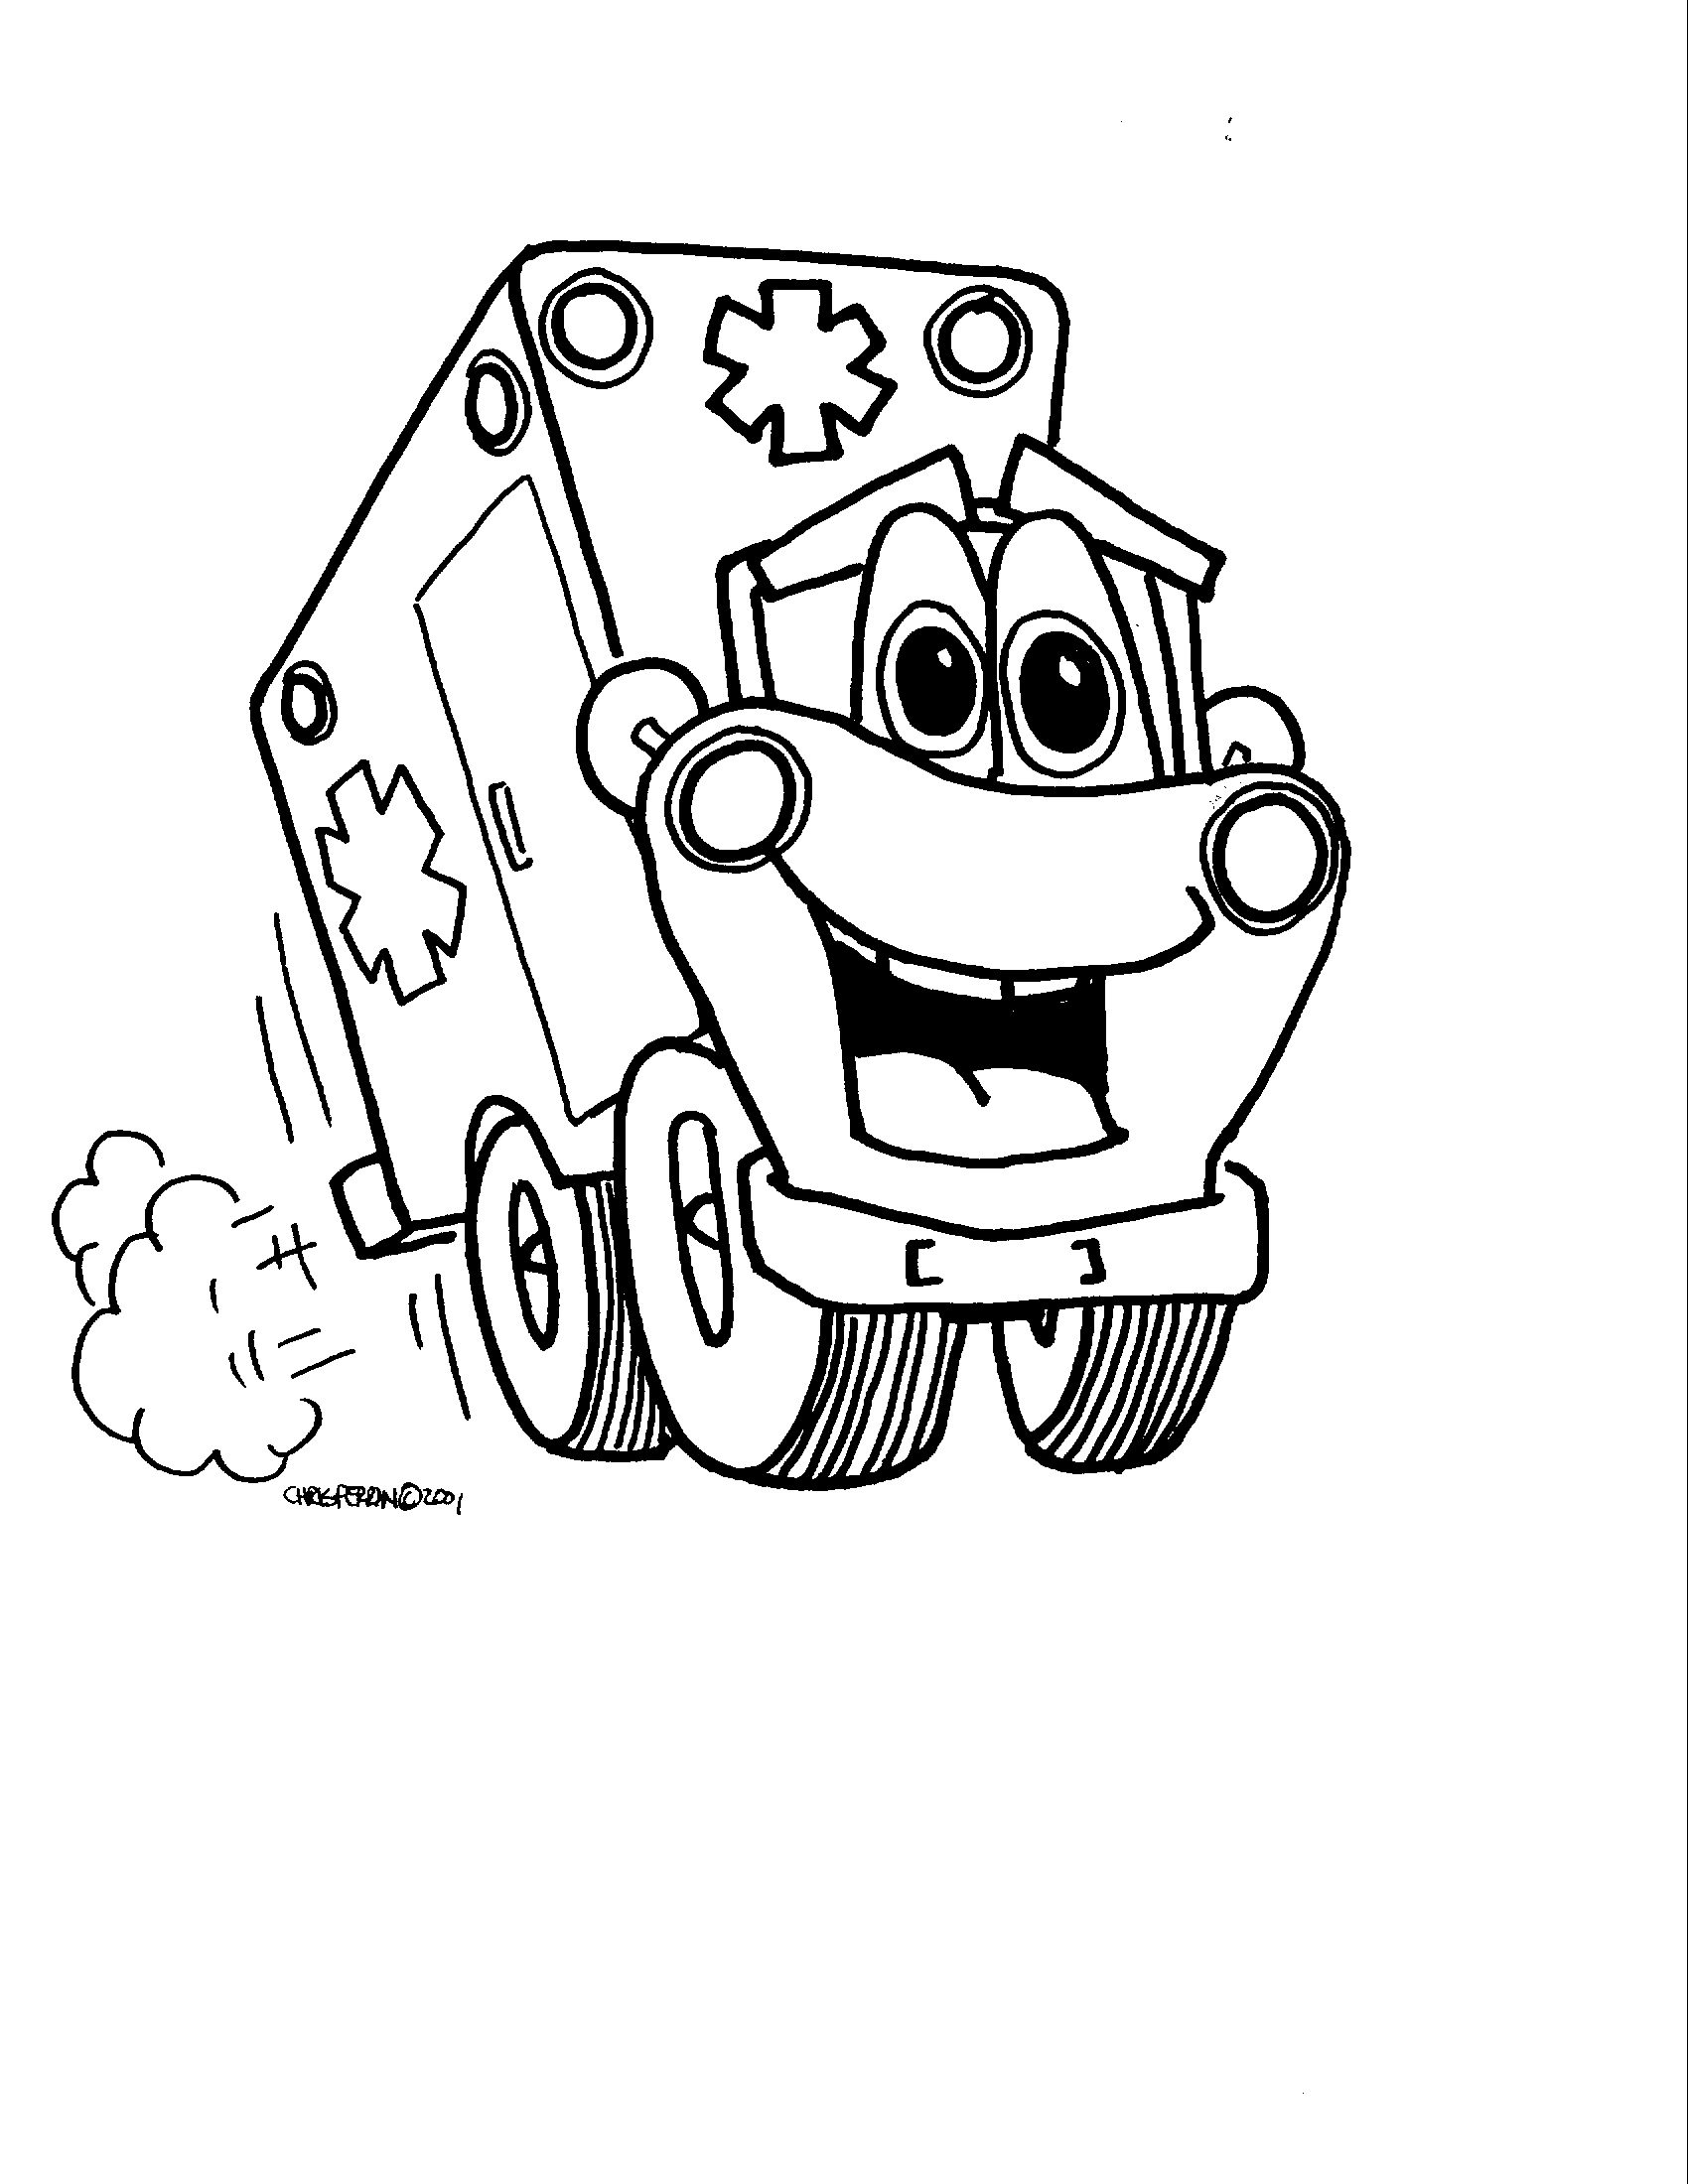 1700x2200 Ambulance Coloring Pages To Download And Print For Free